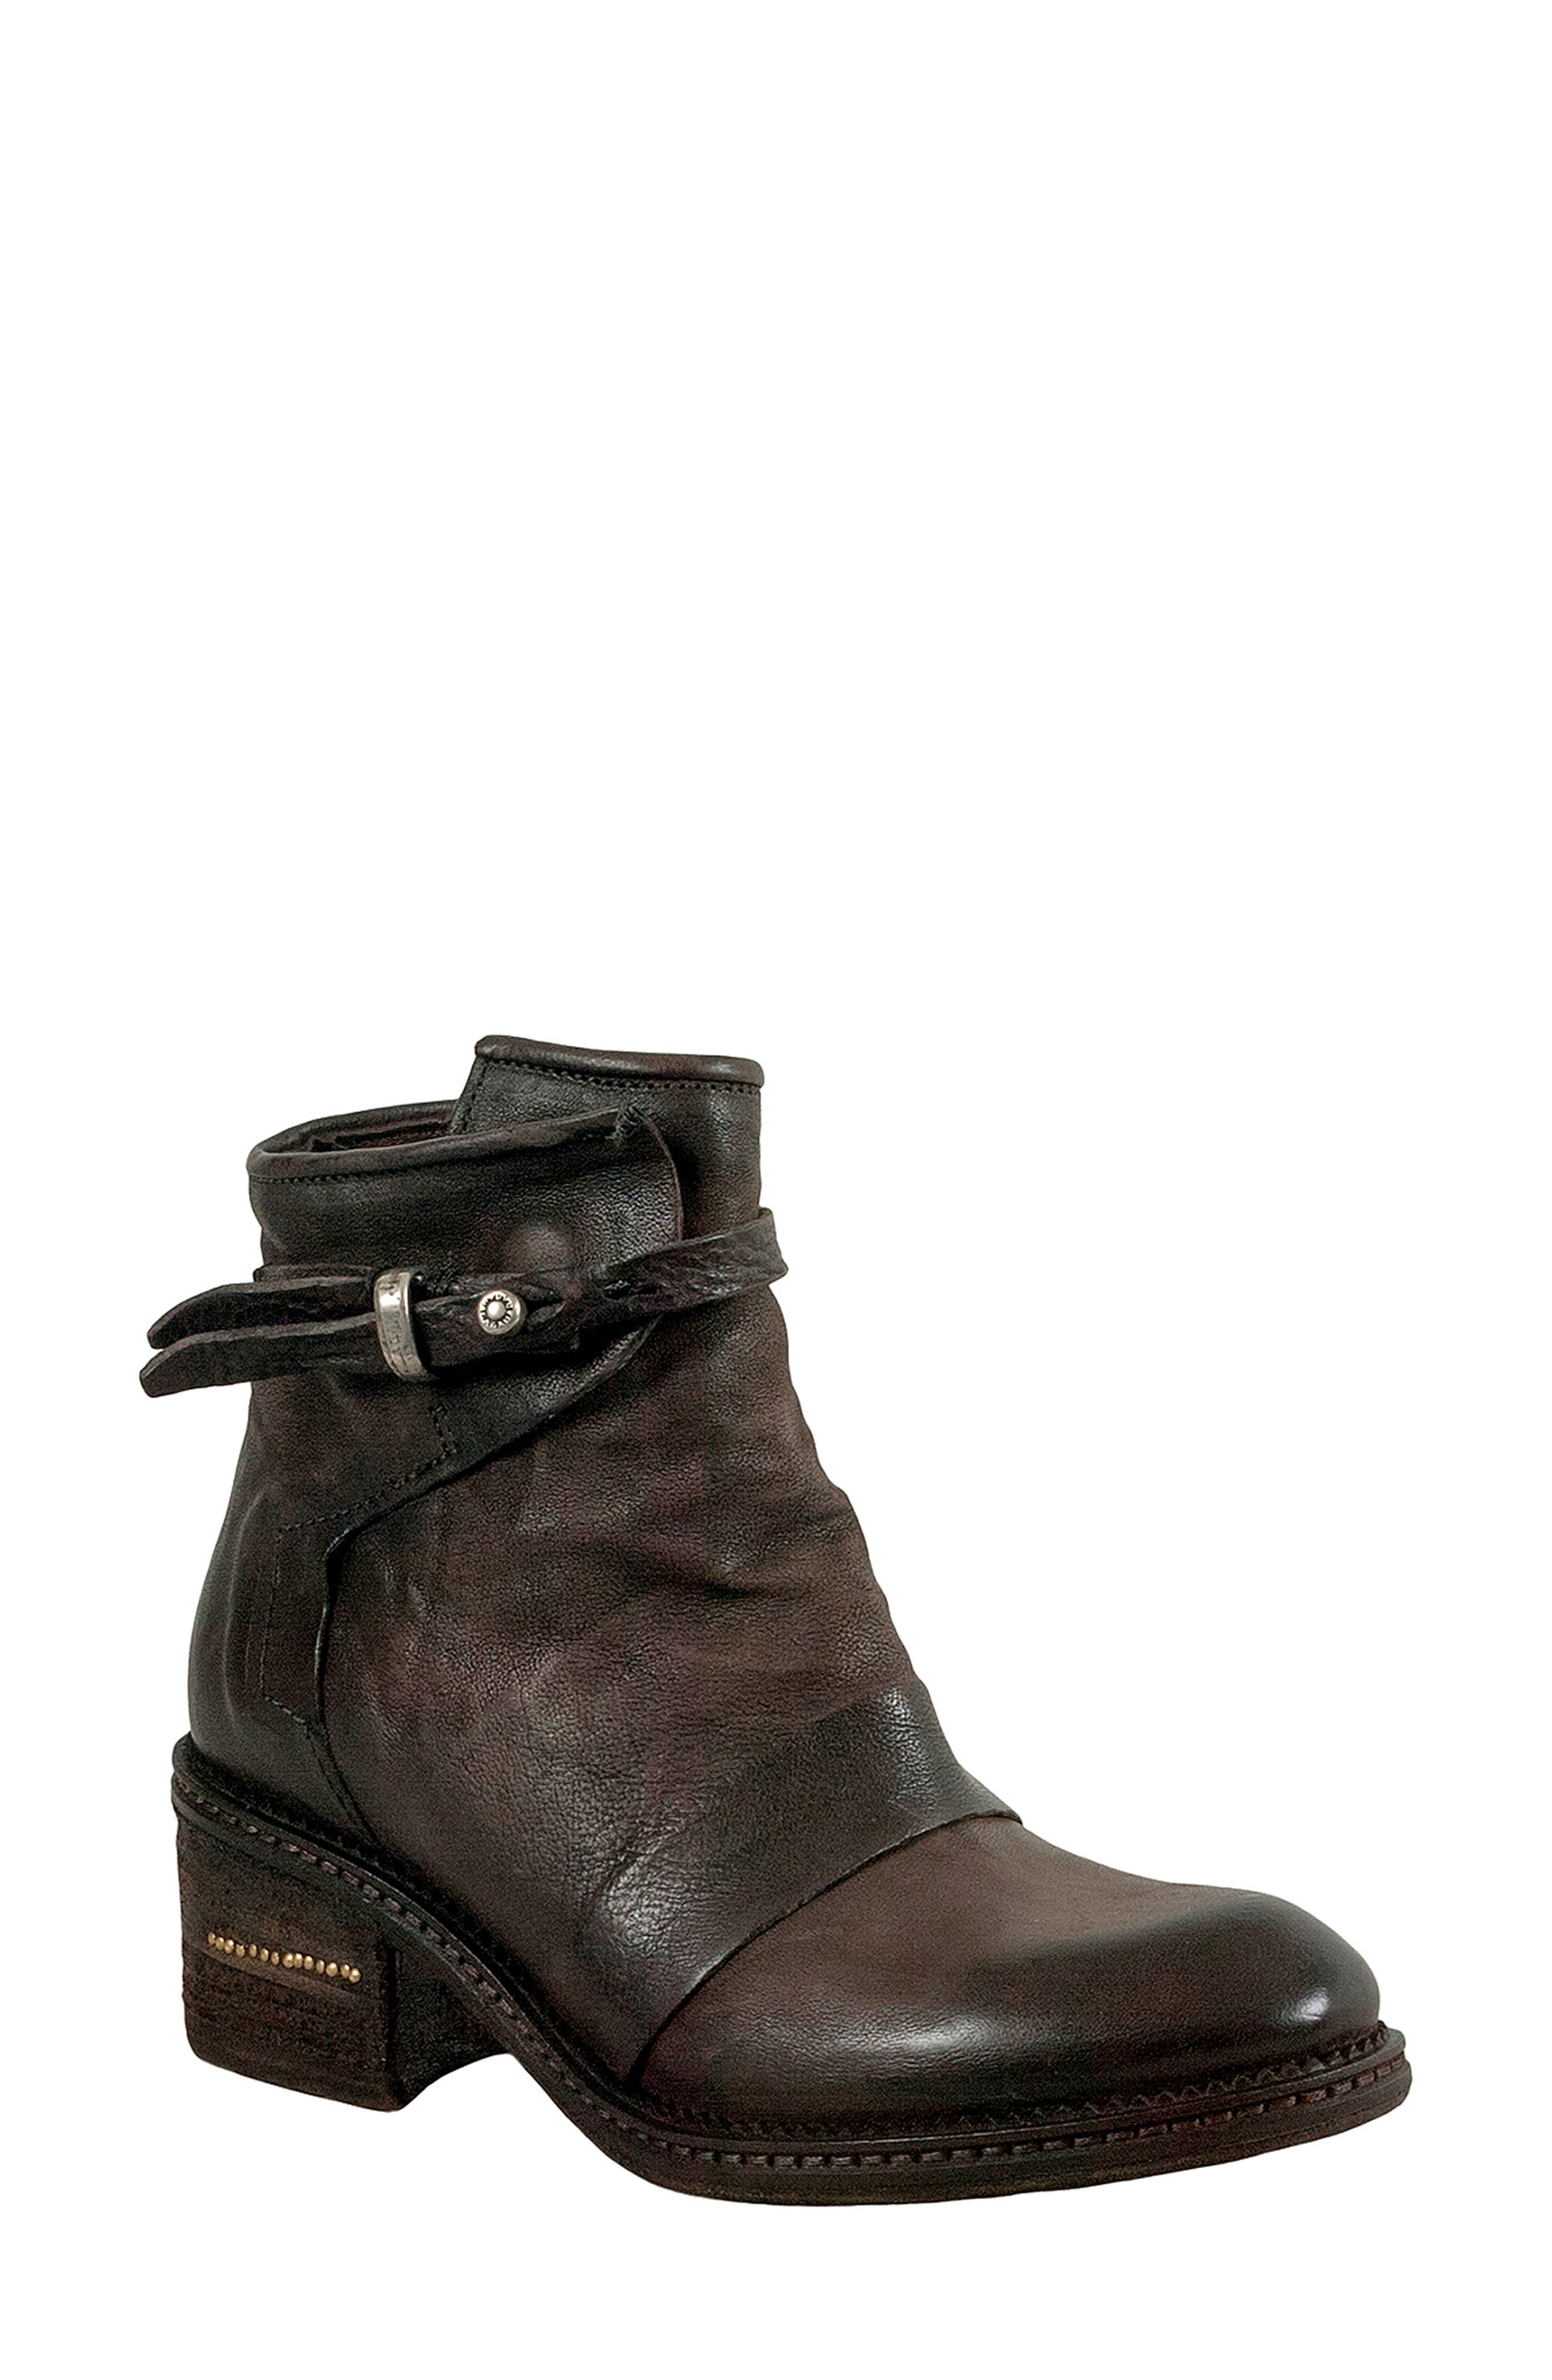 A.S.98 Yaron Bootie in Brown